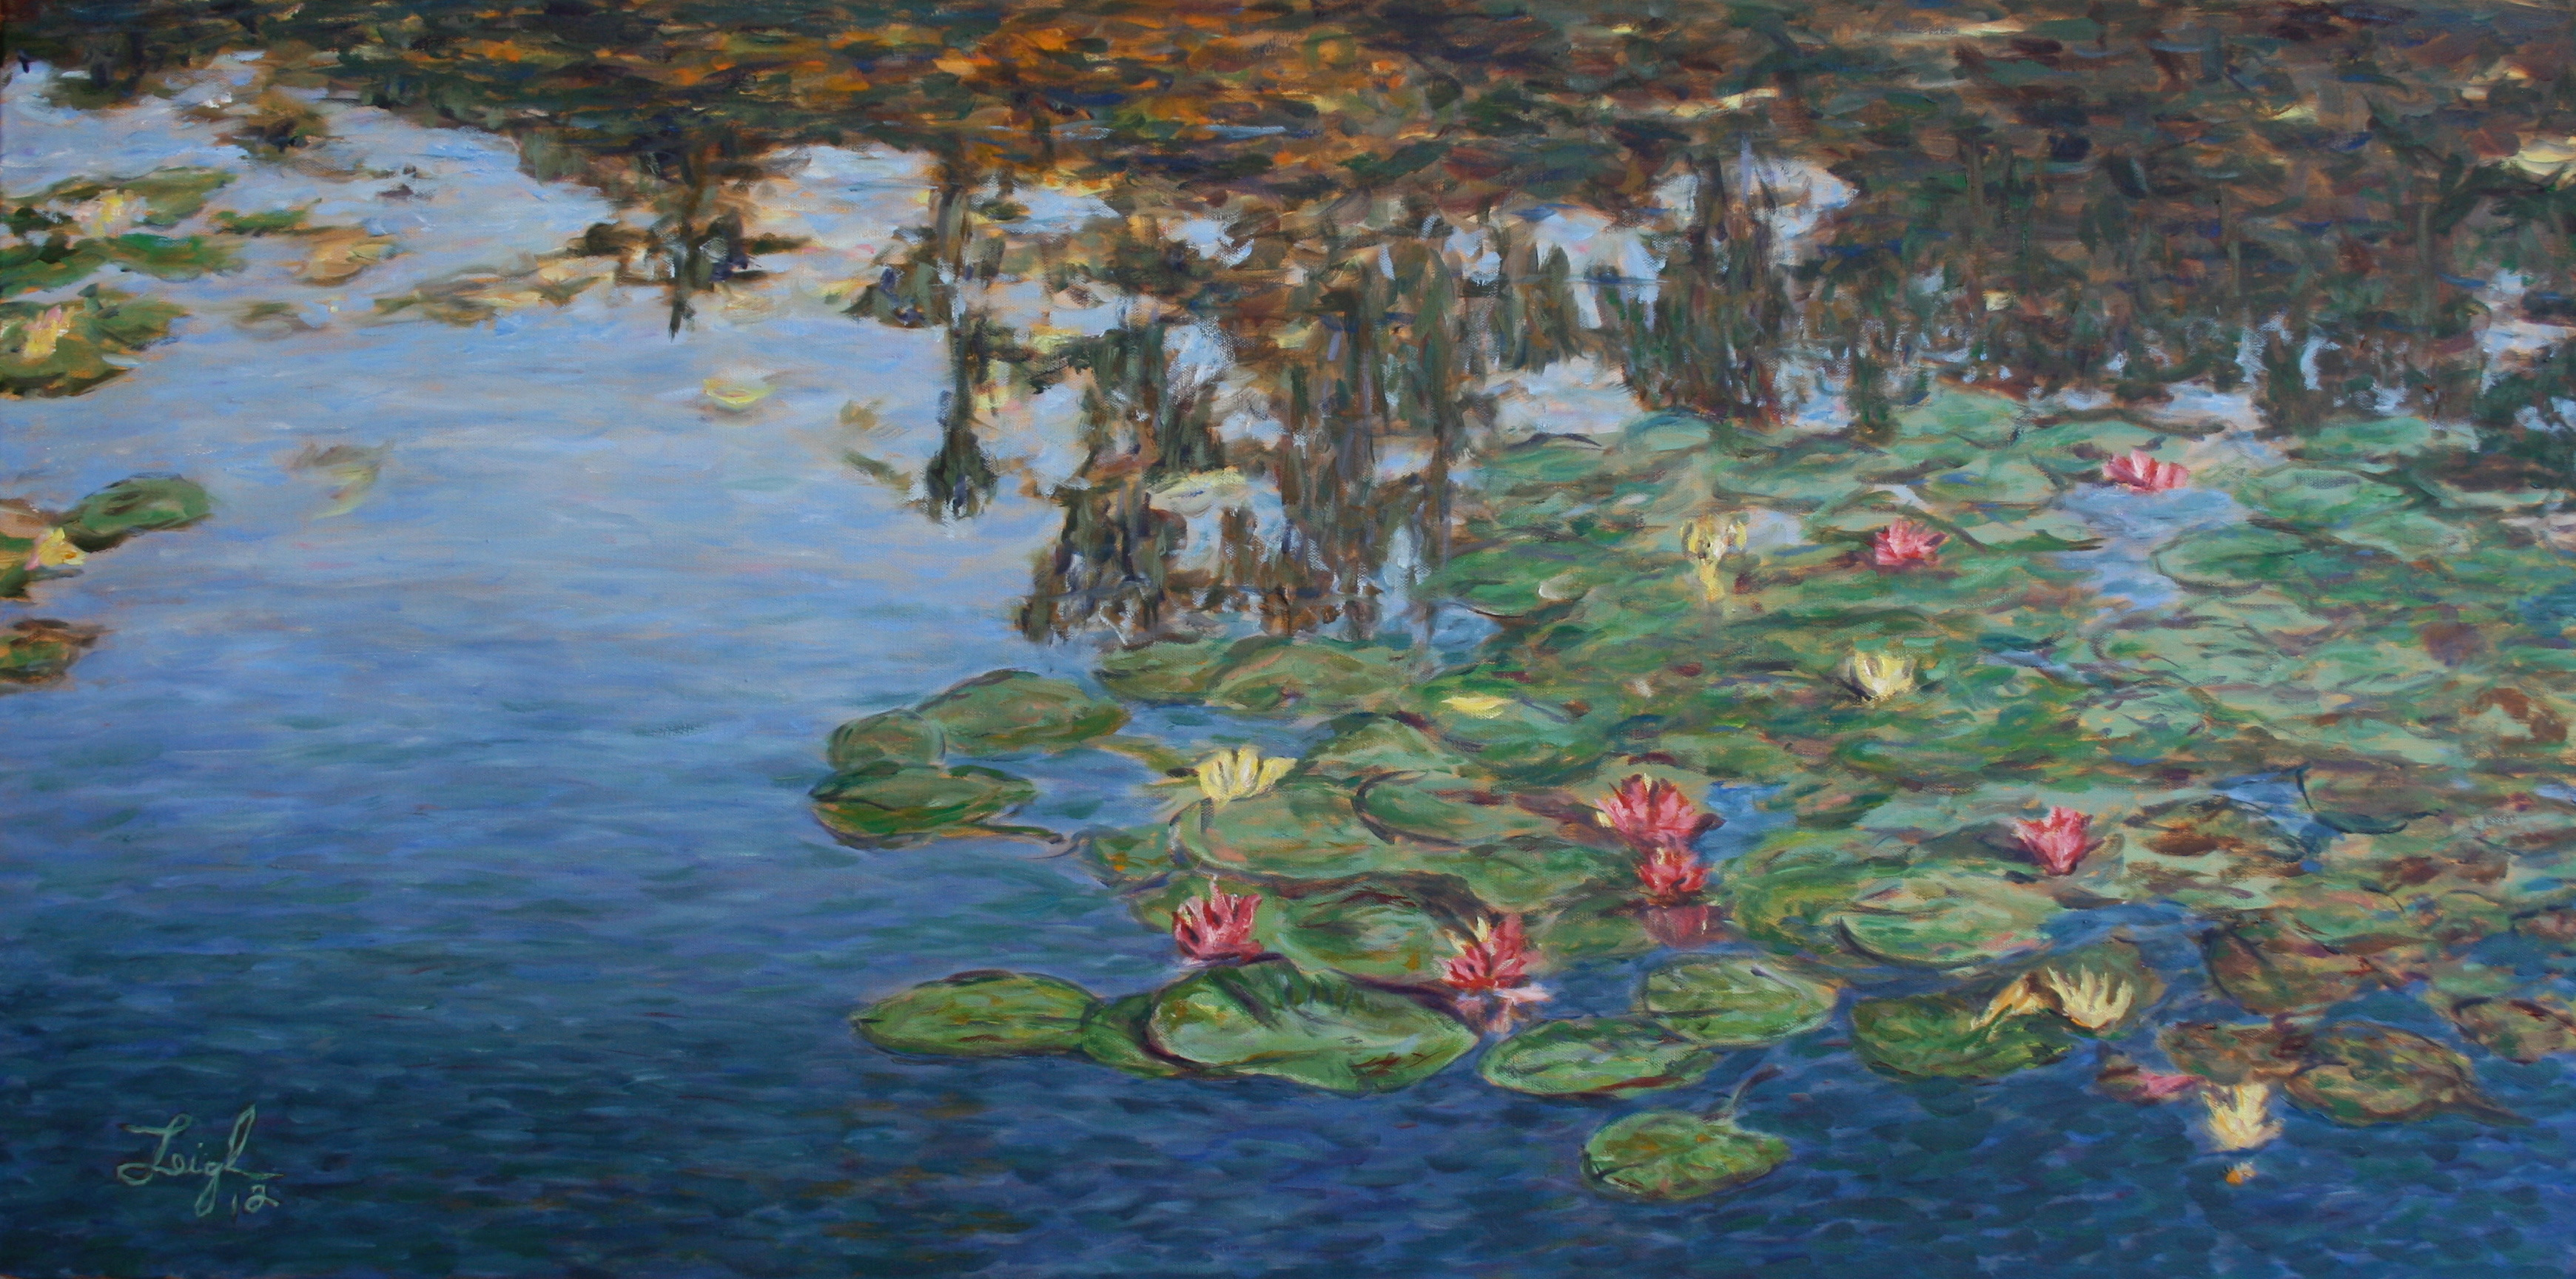 Water Lilies in Monet's Pond  ~   Doug & Karen Hall, San Jose, CA  2012 • 48 x 24